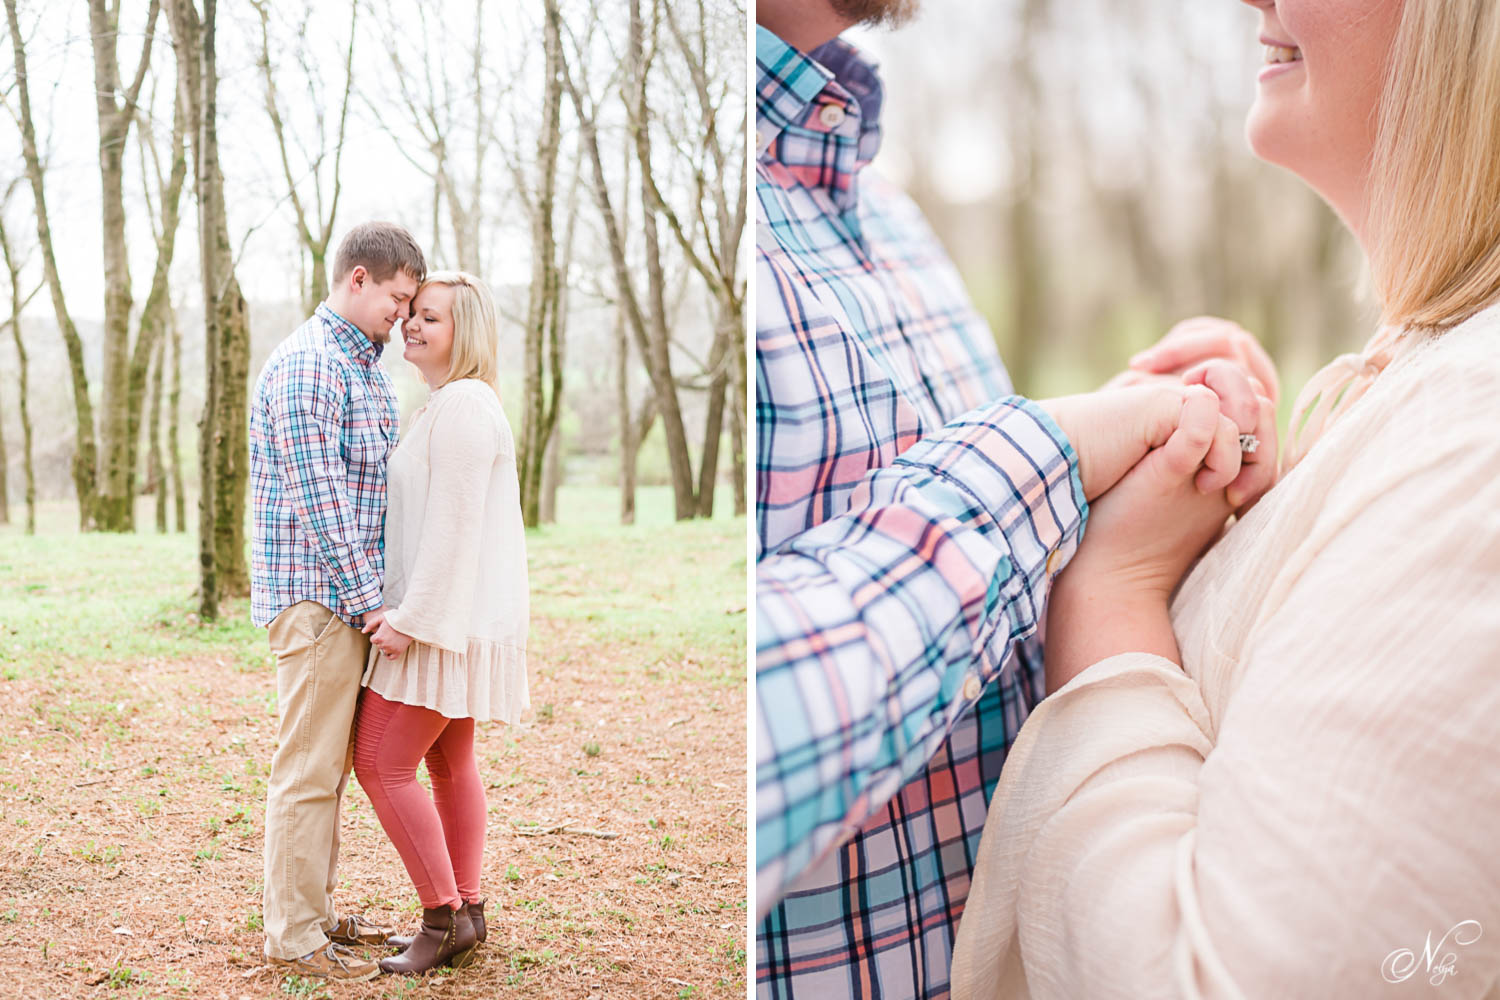 two peoplegetting early spring engagement photos in the pines at Hiwassee River weddings venue. And cllose up of them holding hands.